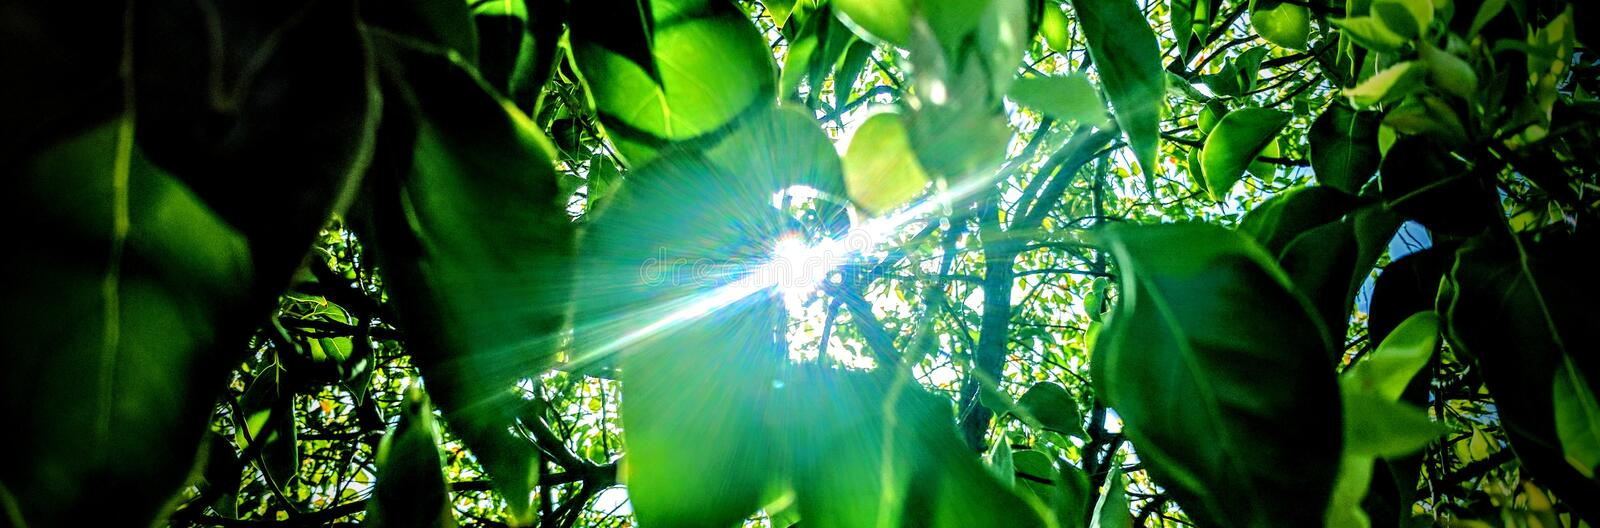 Sunlight through the tree royalty free stock images